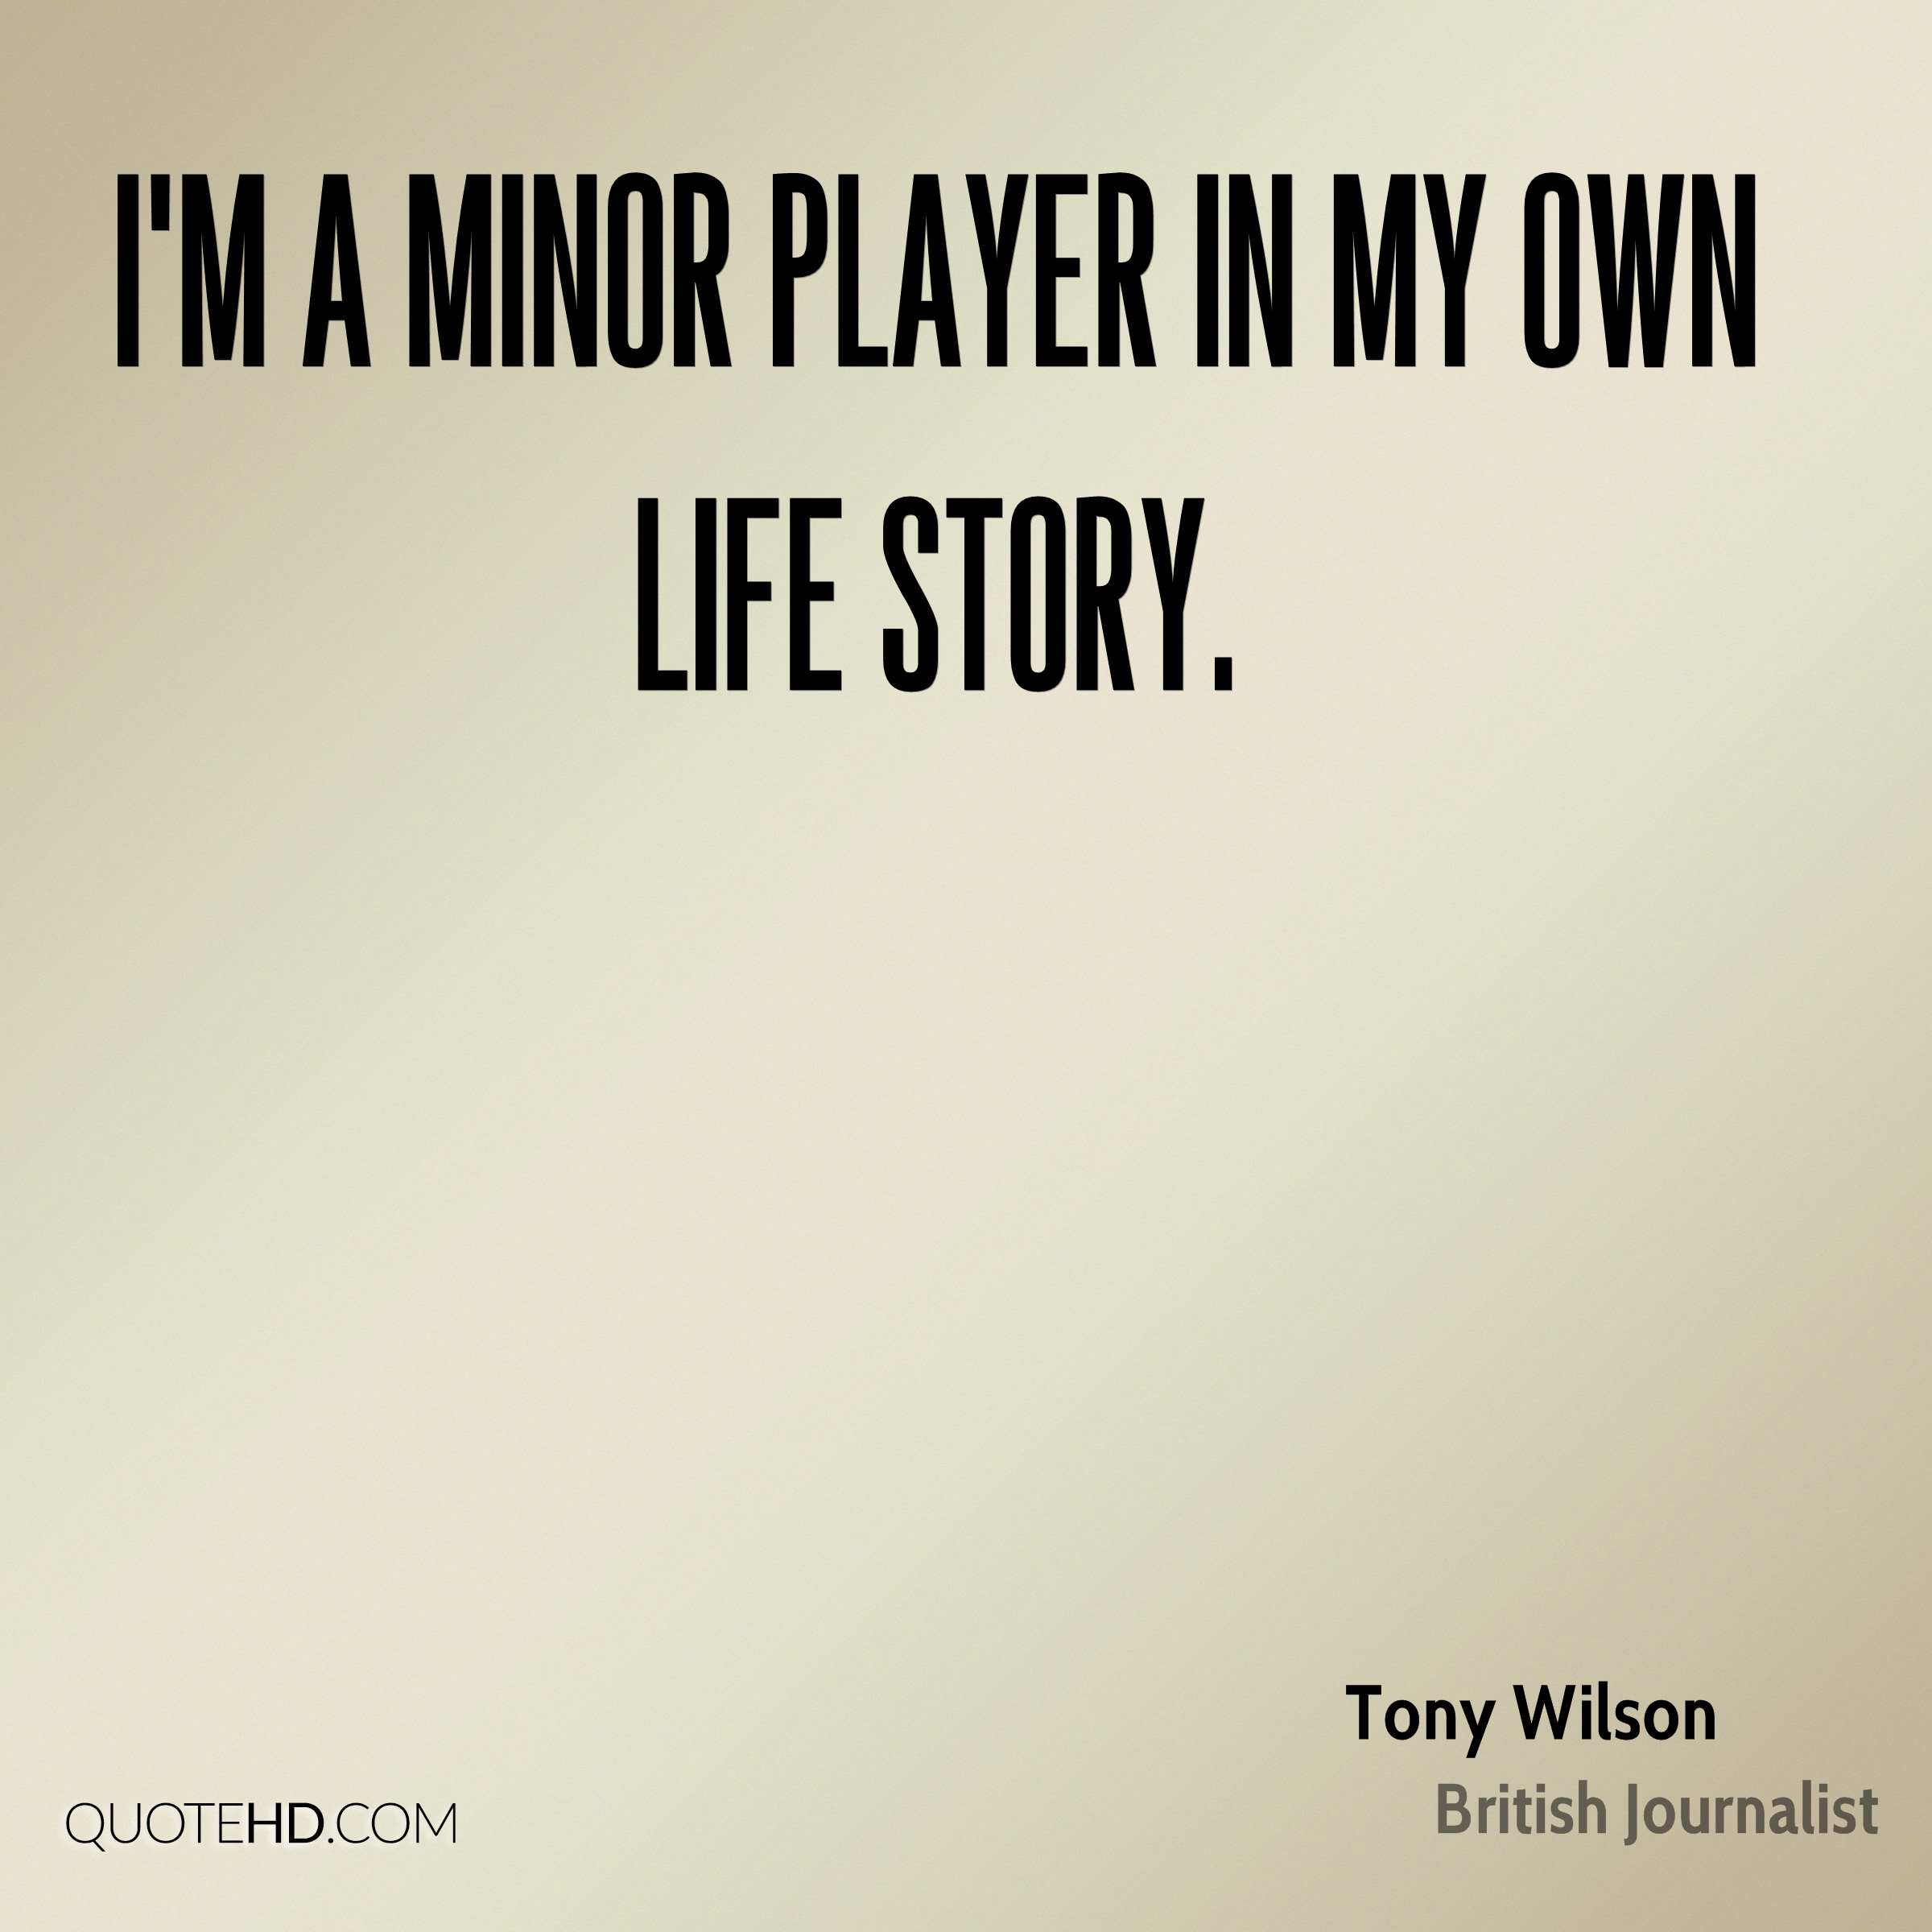 I'm a minor player in my own life story.